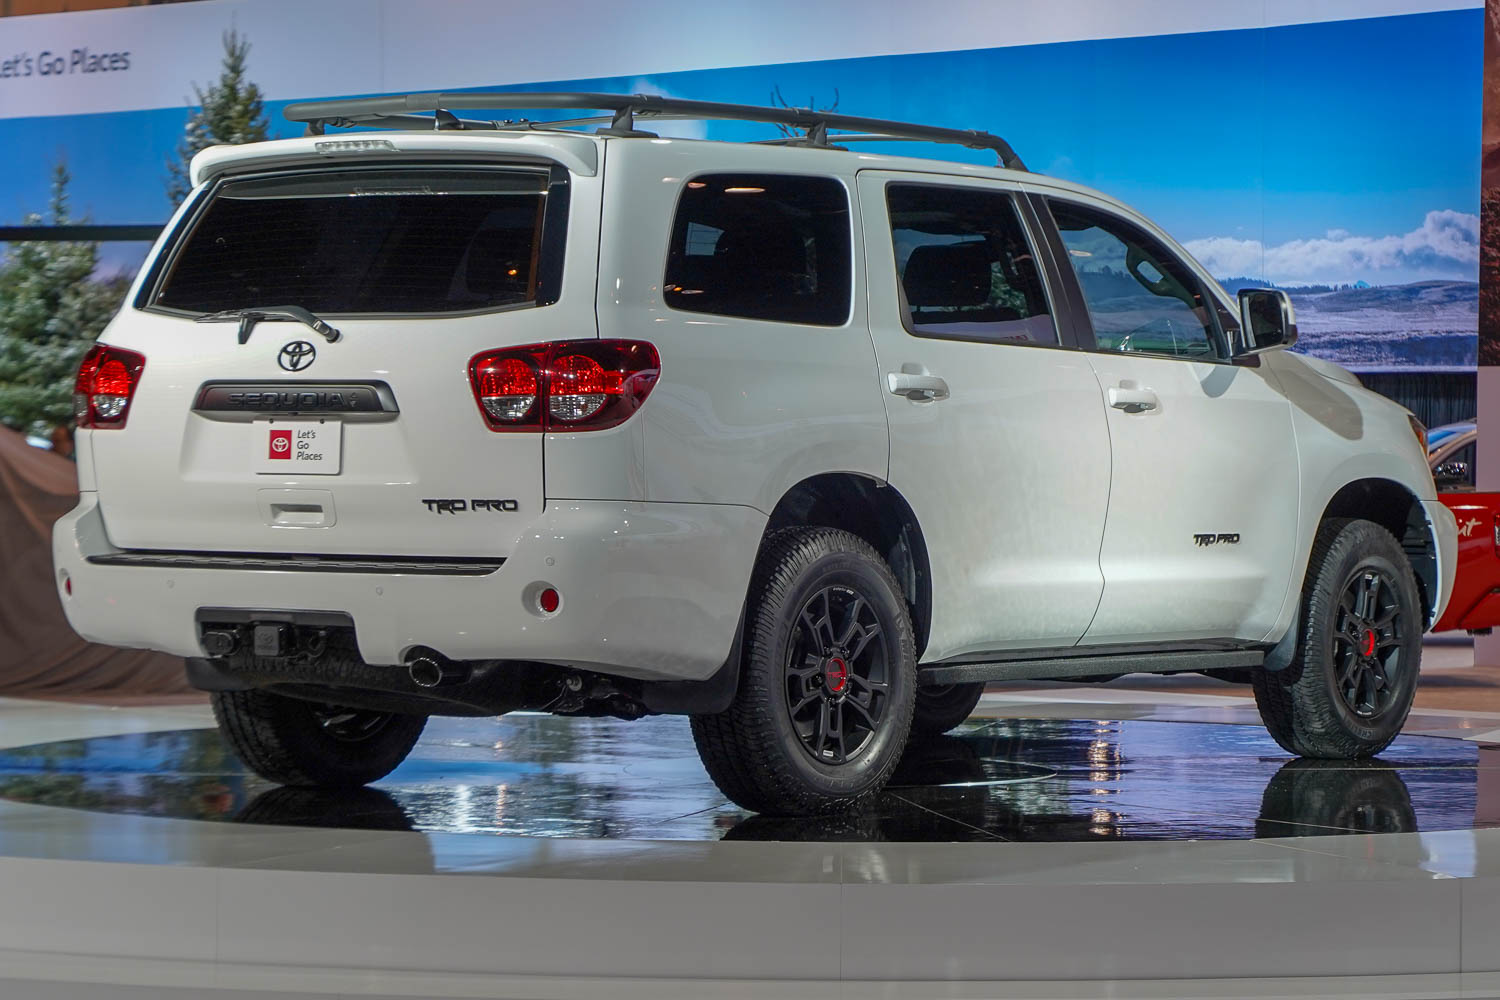 Toyota Large Suv >> 2019 Toyota Sequoia Large Suv Hd Image 1